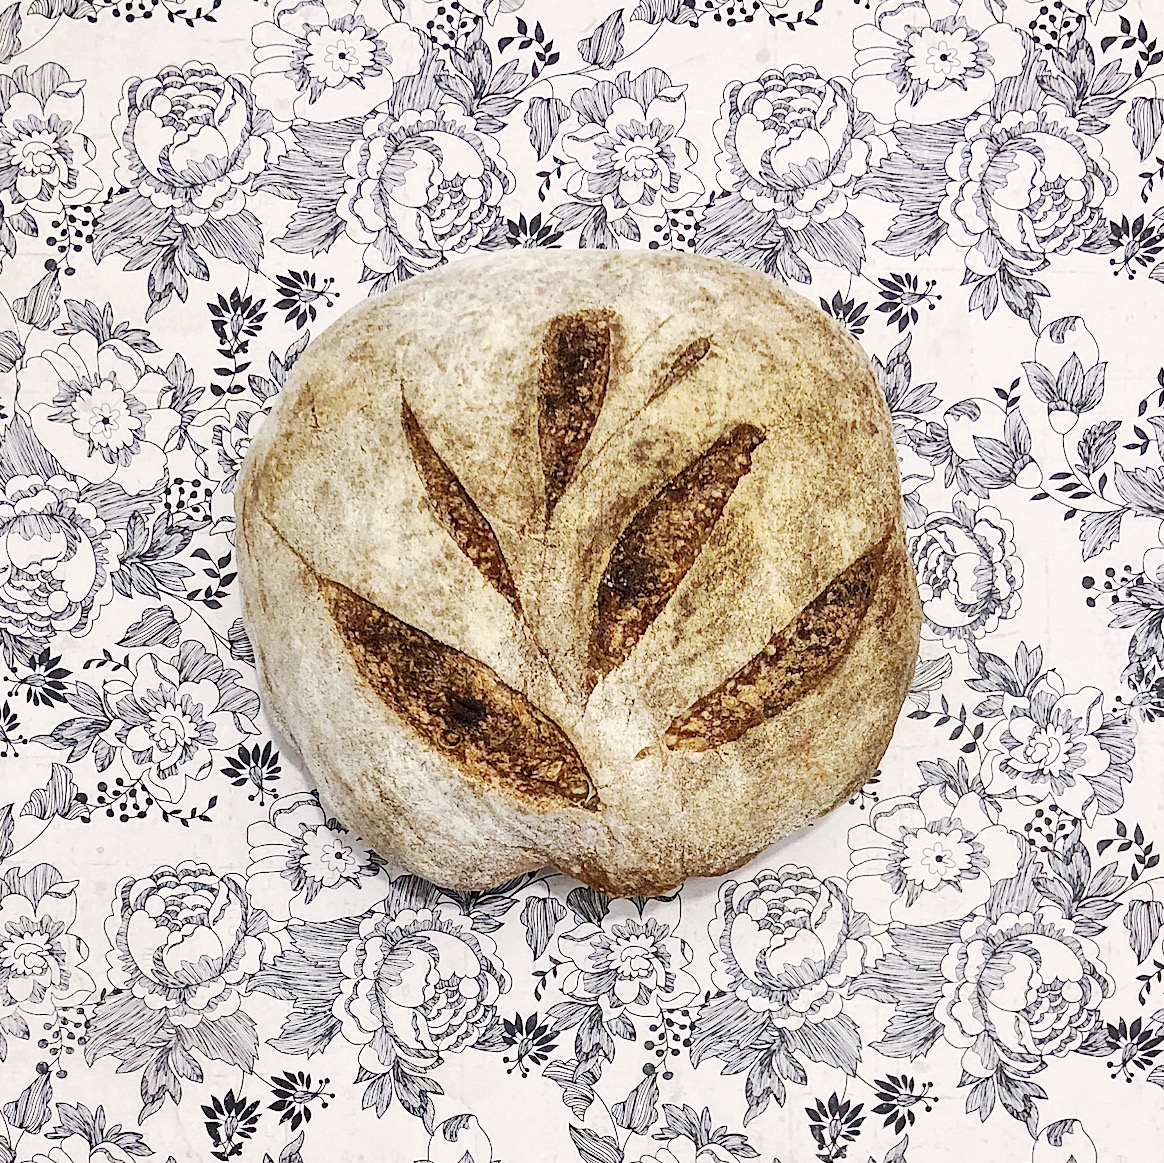 Sourdough boules are getting design-y.